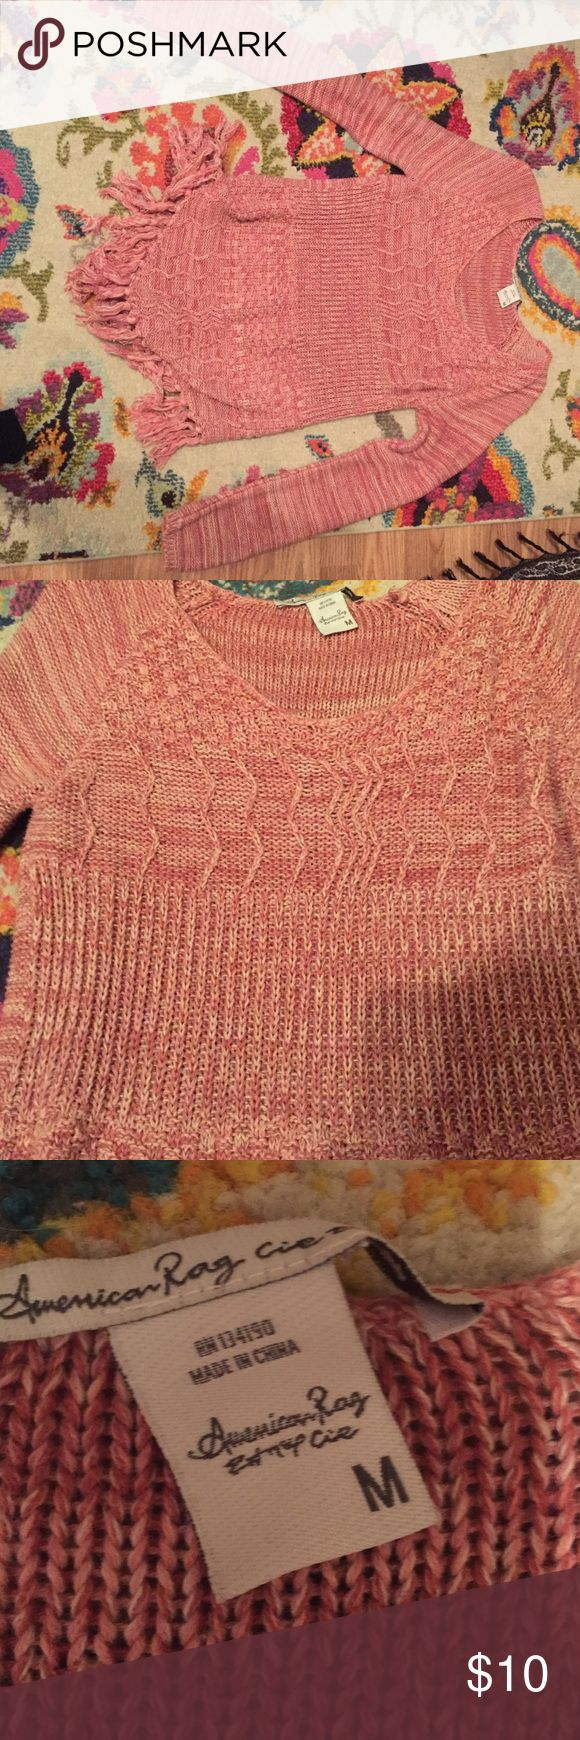 American Rag sweater American Rag sweater, perfect condition. American Rag Sweaters Crew & Scoop Necks